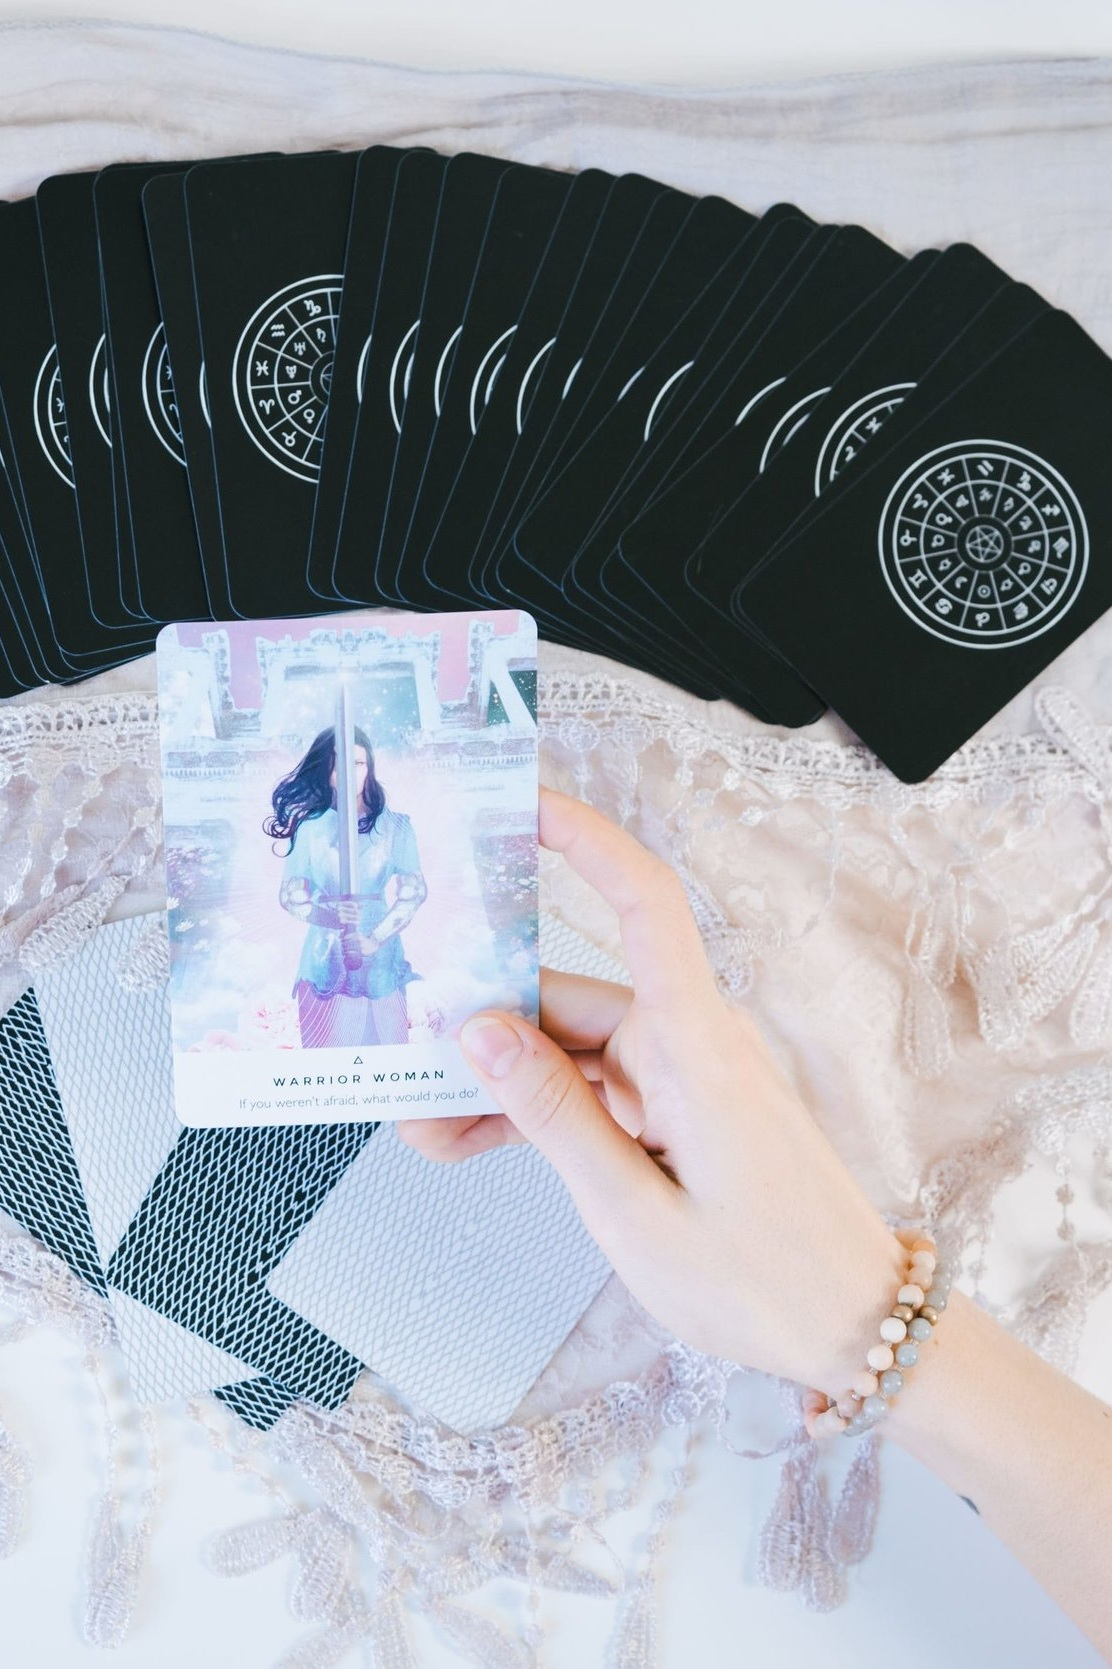 How Can You Make Tarot Cards Work In Magic? by The Traveling Witch #Witchcraft